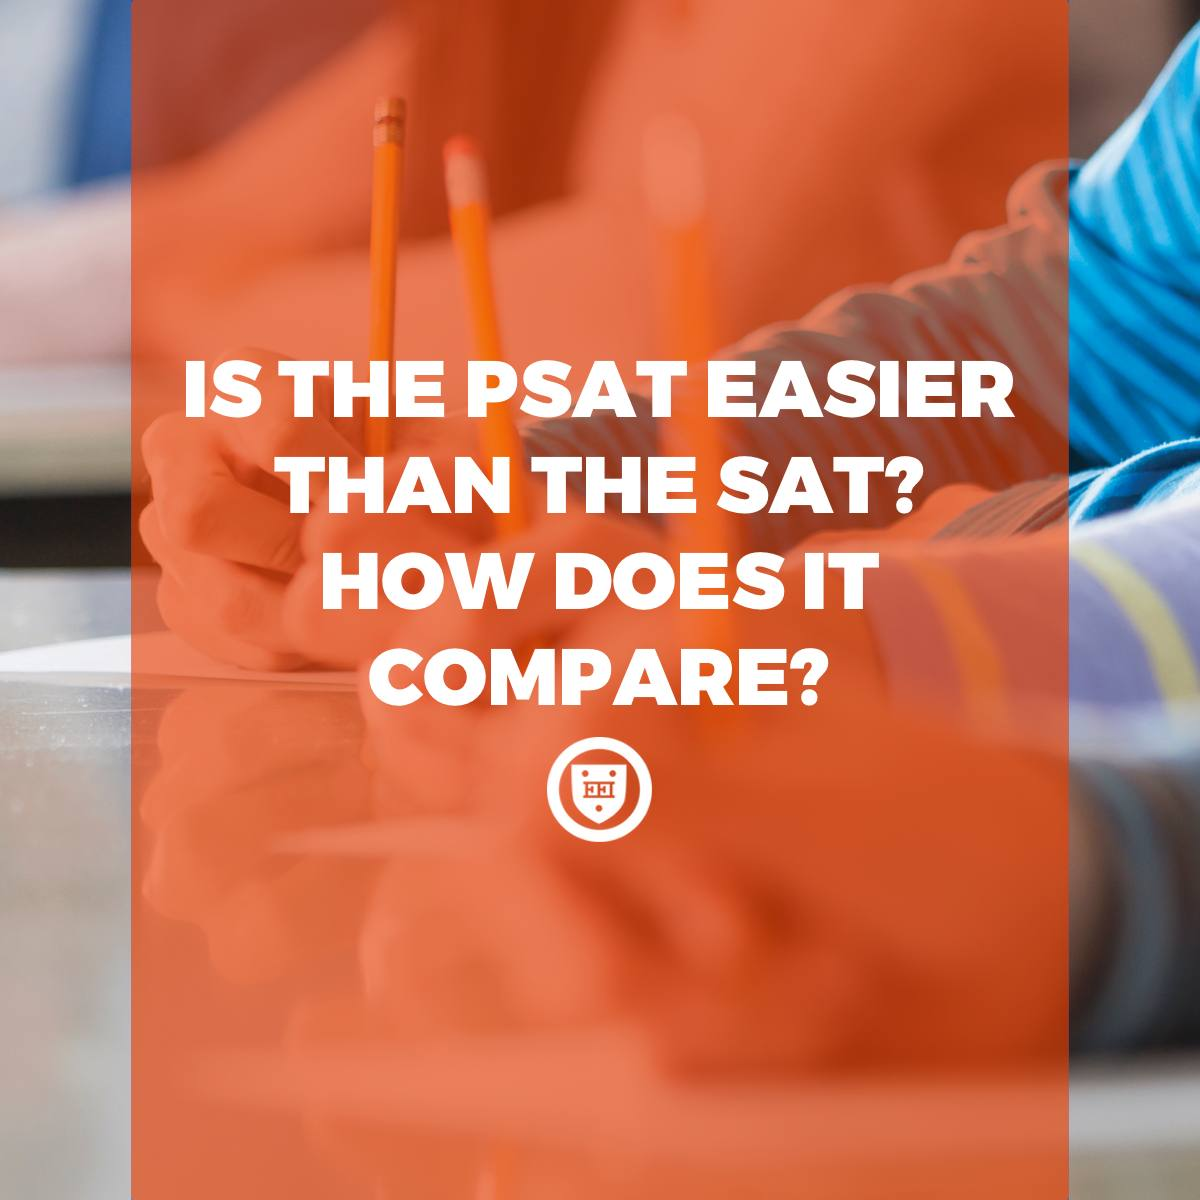 Is the PSAT easier than the SAT? How does it compare?